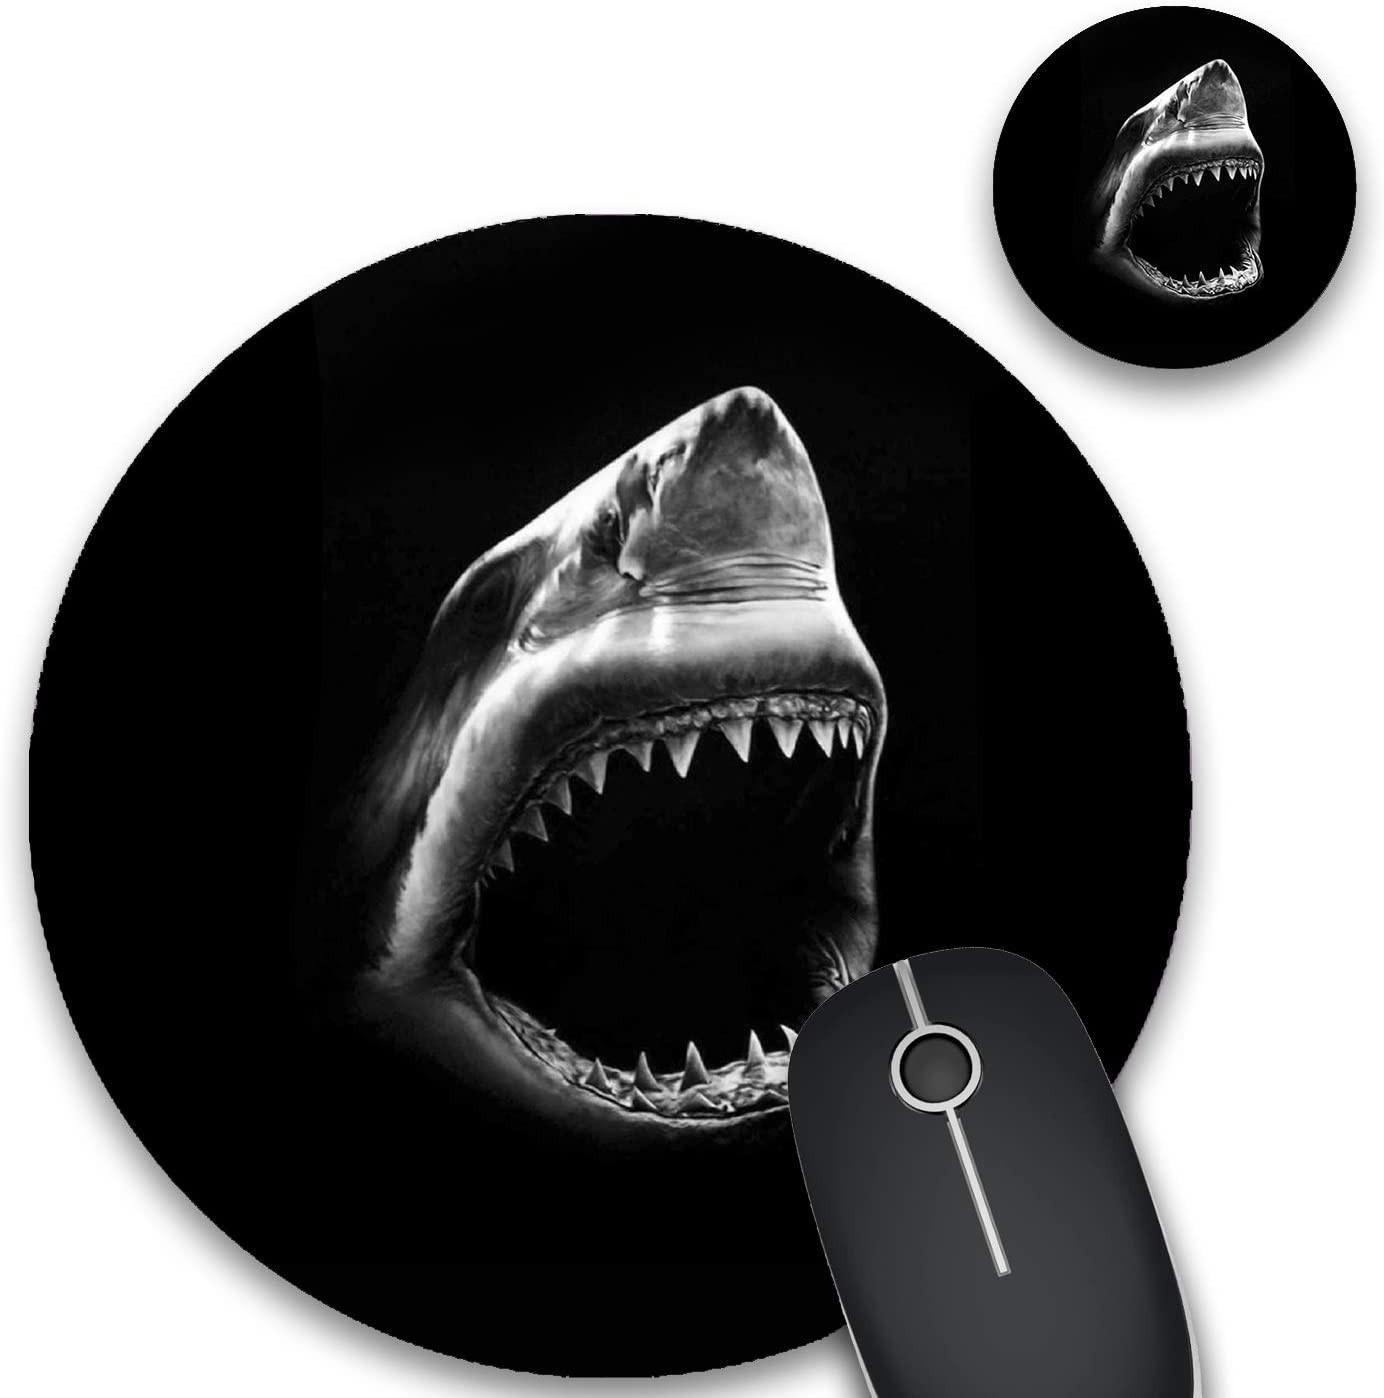 Round Mouse Pad and Coasters Set, Black and White Shark Mousepad, Non-Slip Rubber Round Gaming Mouse Pad, Customized Mouse Mat for Home Office Business Gaming,7.87 x 7.87 x 0.1 Inch